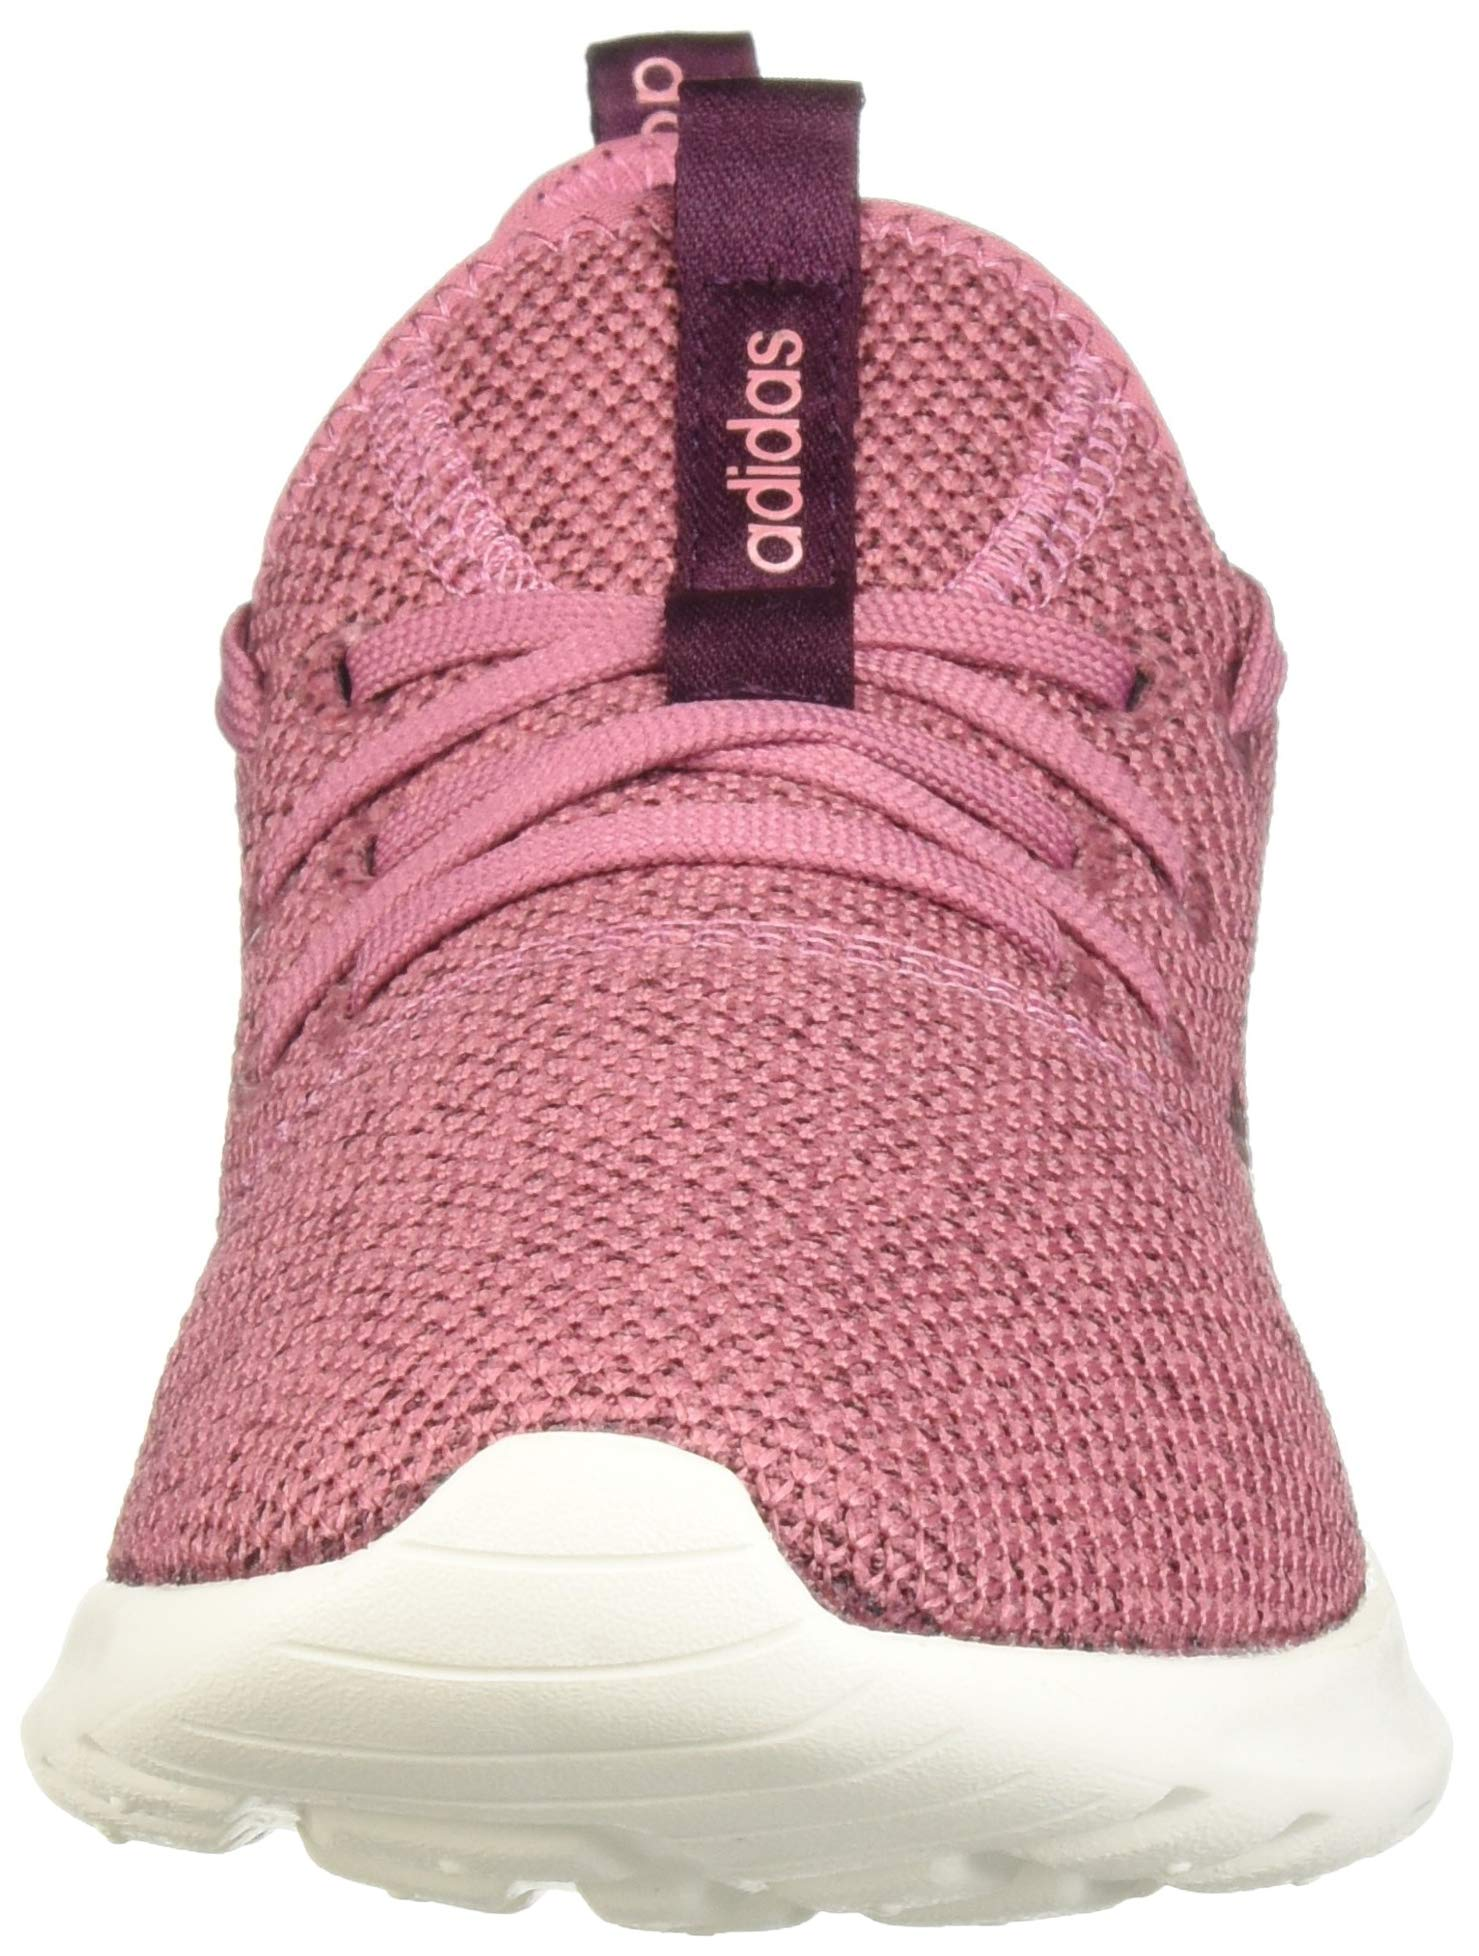 adidas Performance Women's Cloudfoam Pure Running Shoe, Maroon/Maroon/White, 5 M US by adidas (Image #4)